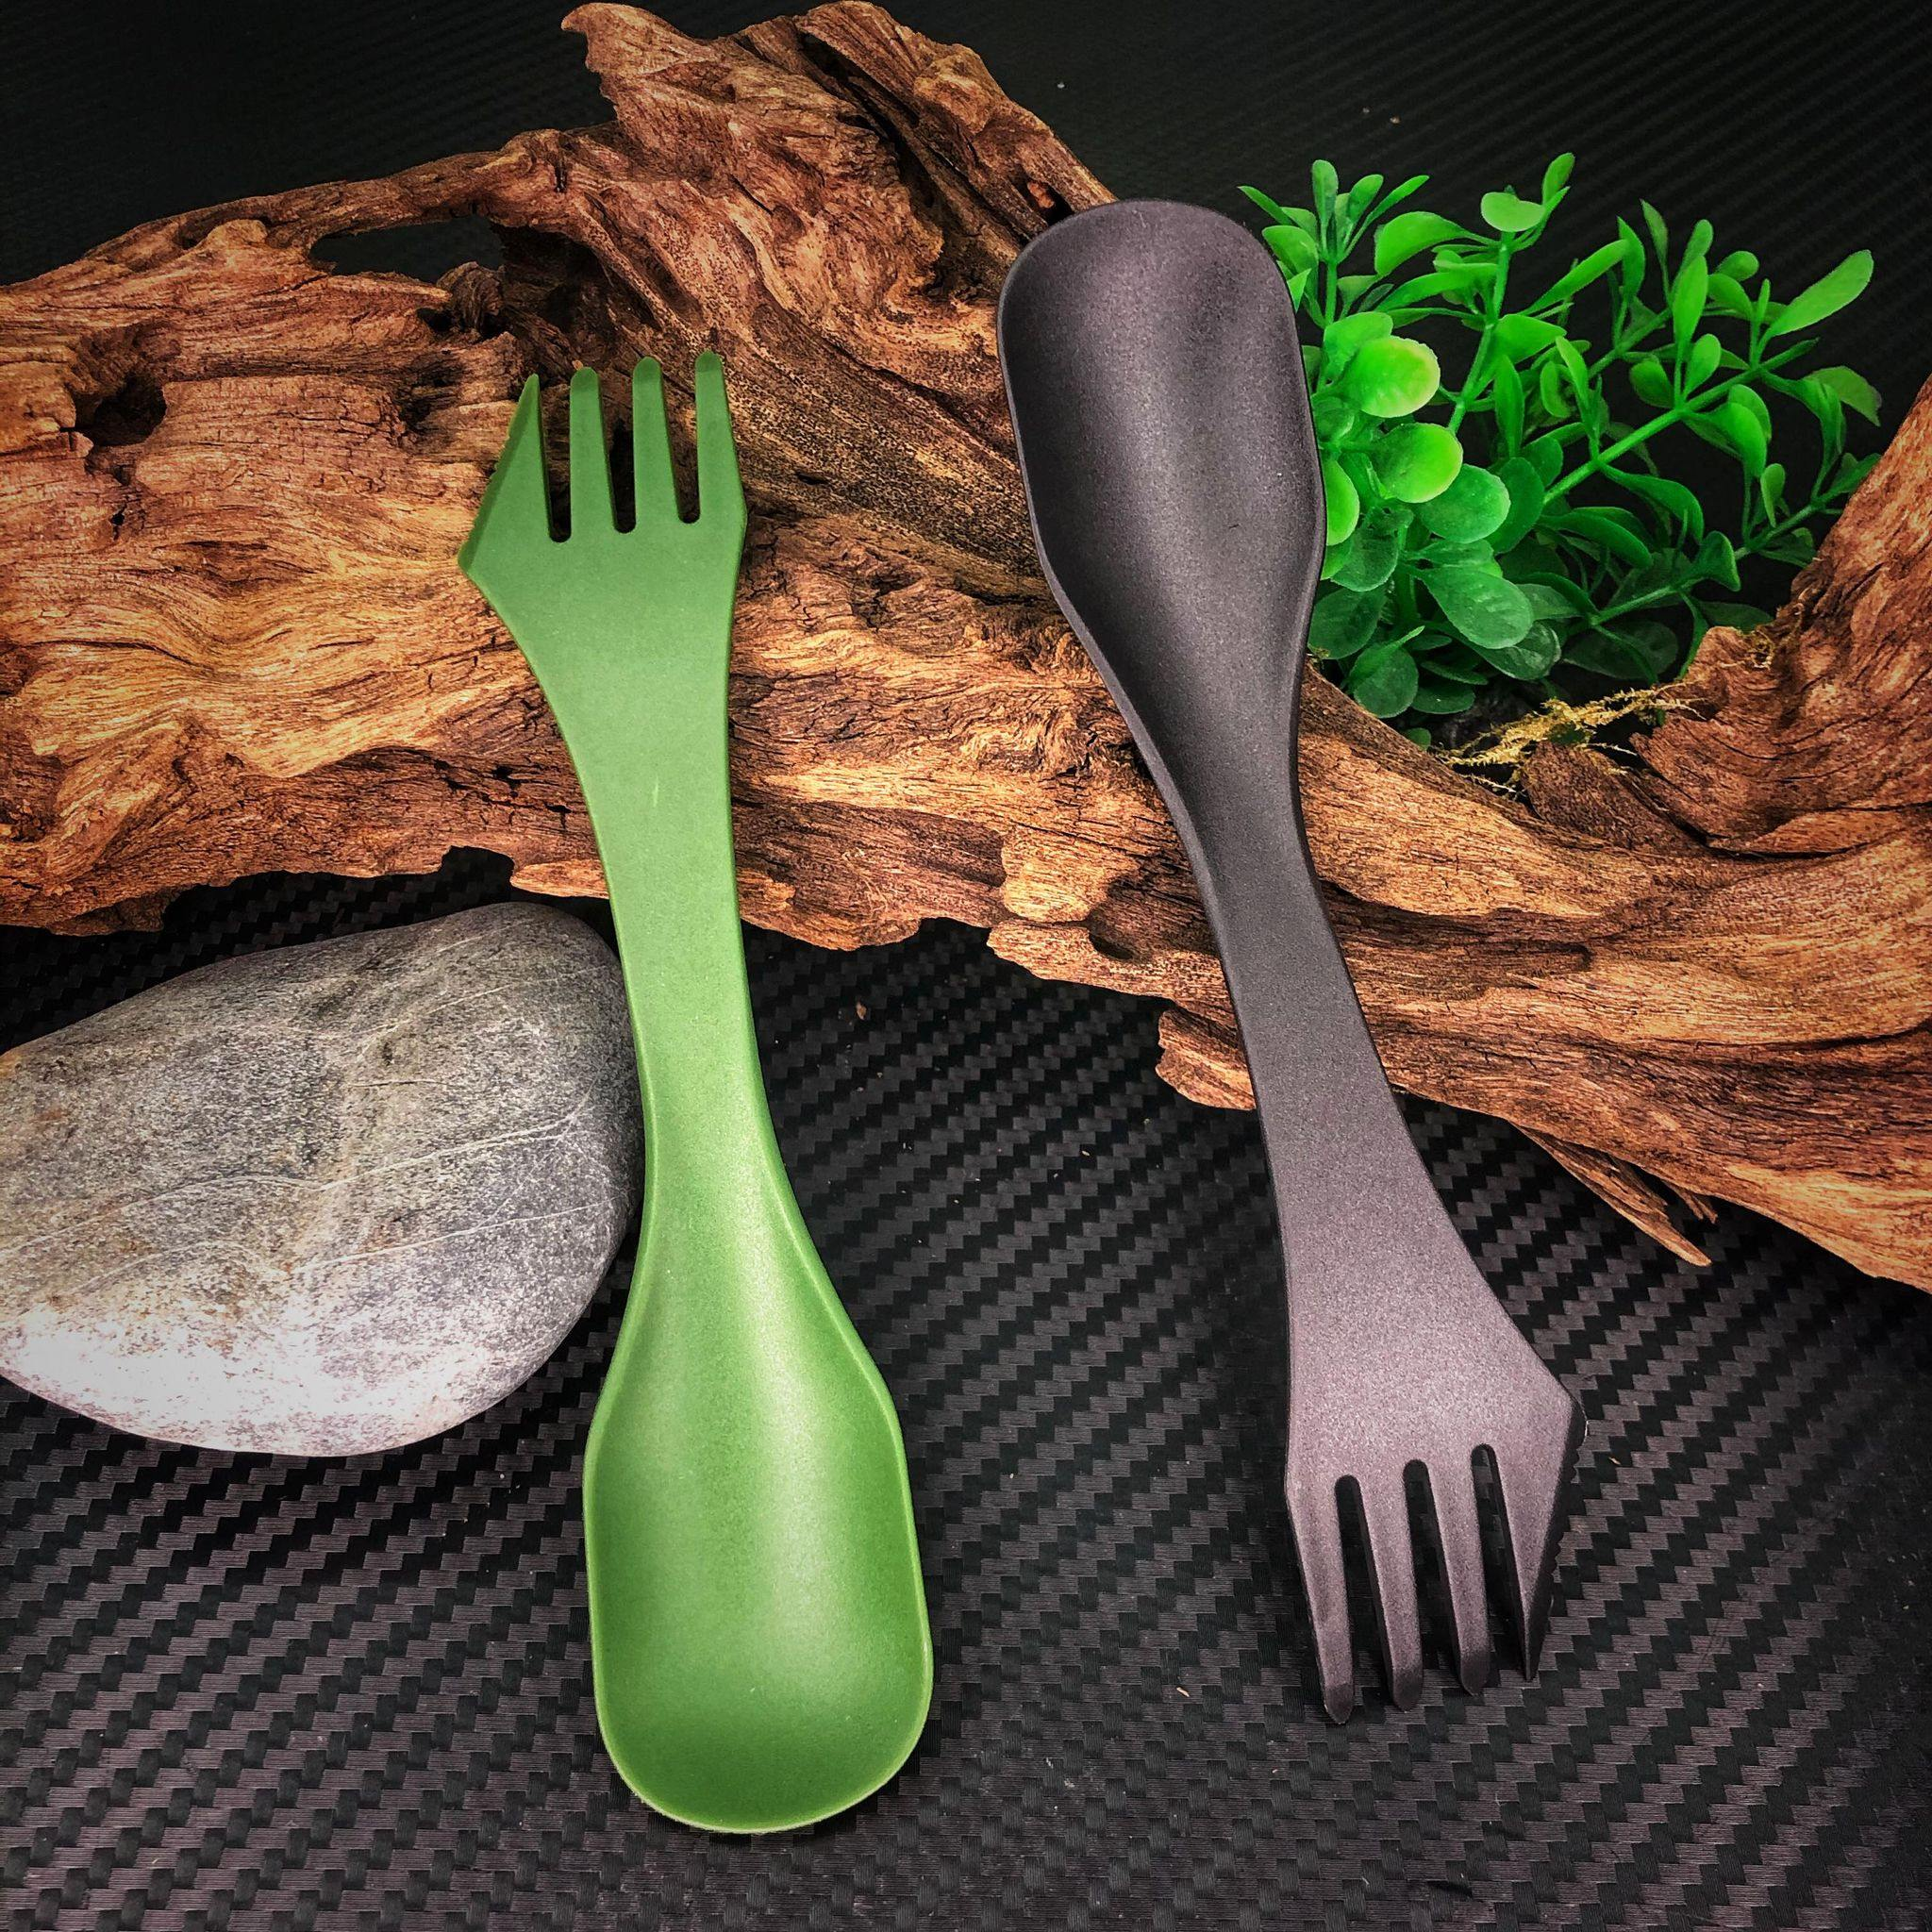 Polymer Spork V2 (Knife, Fork, Spoon) - Black-Tactical.com